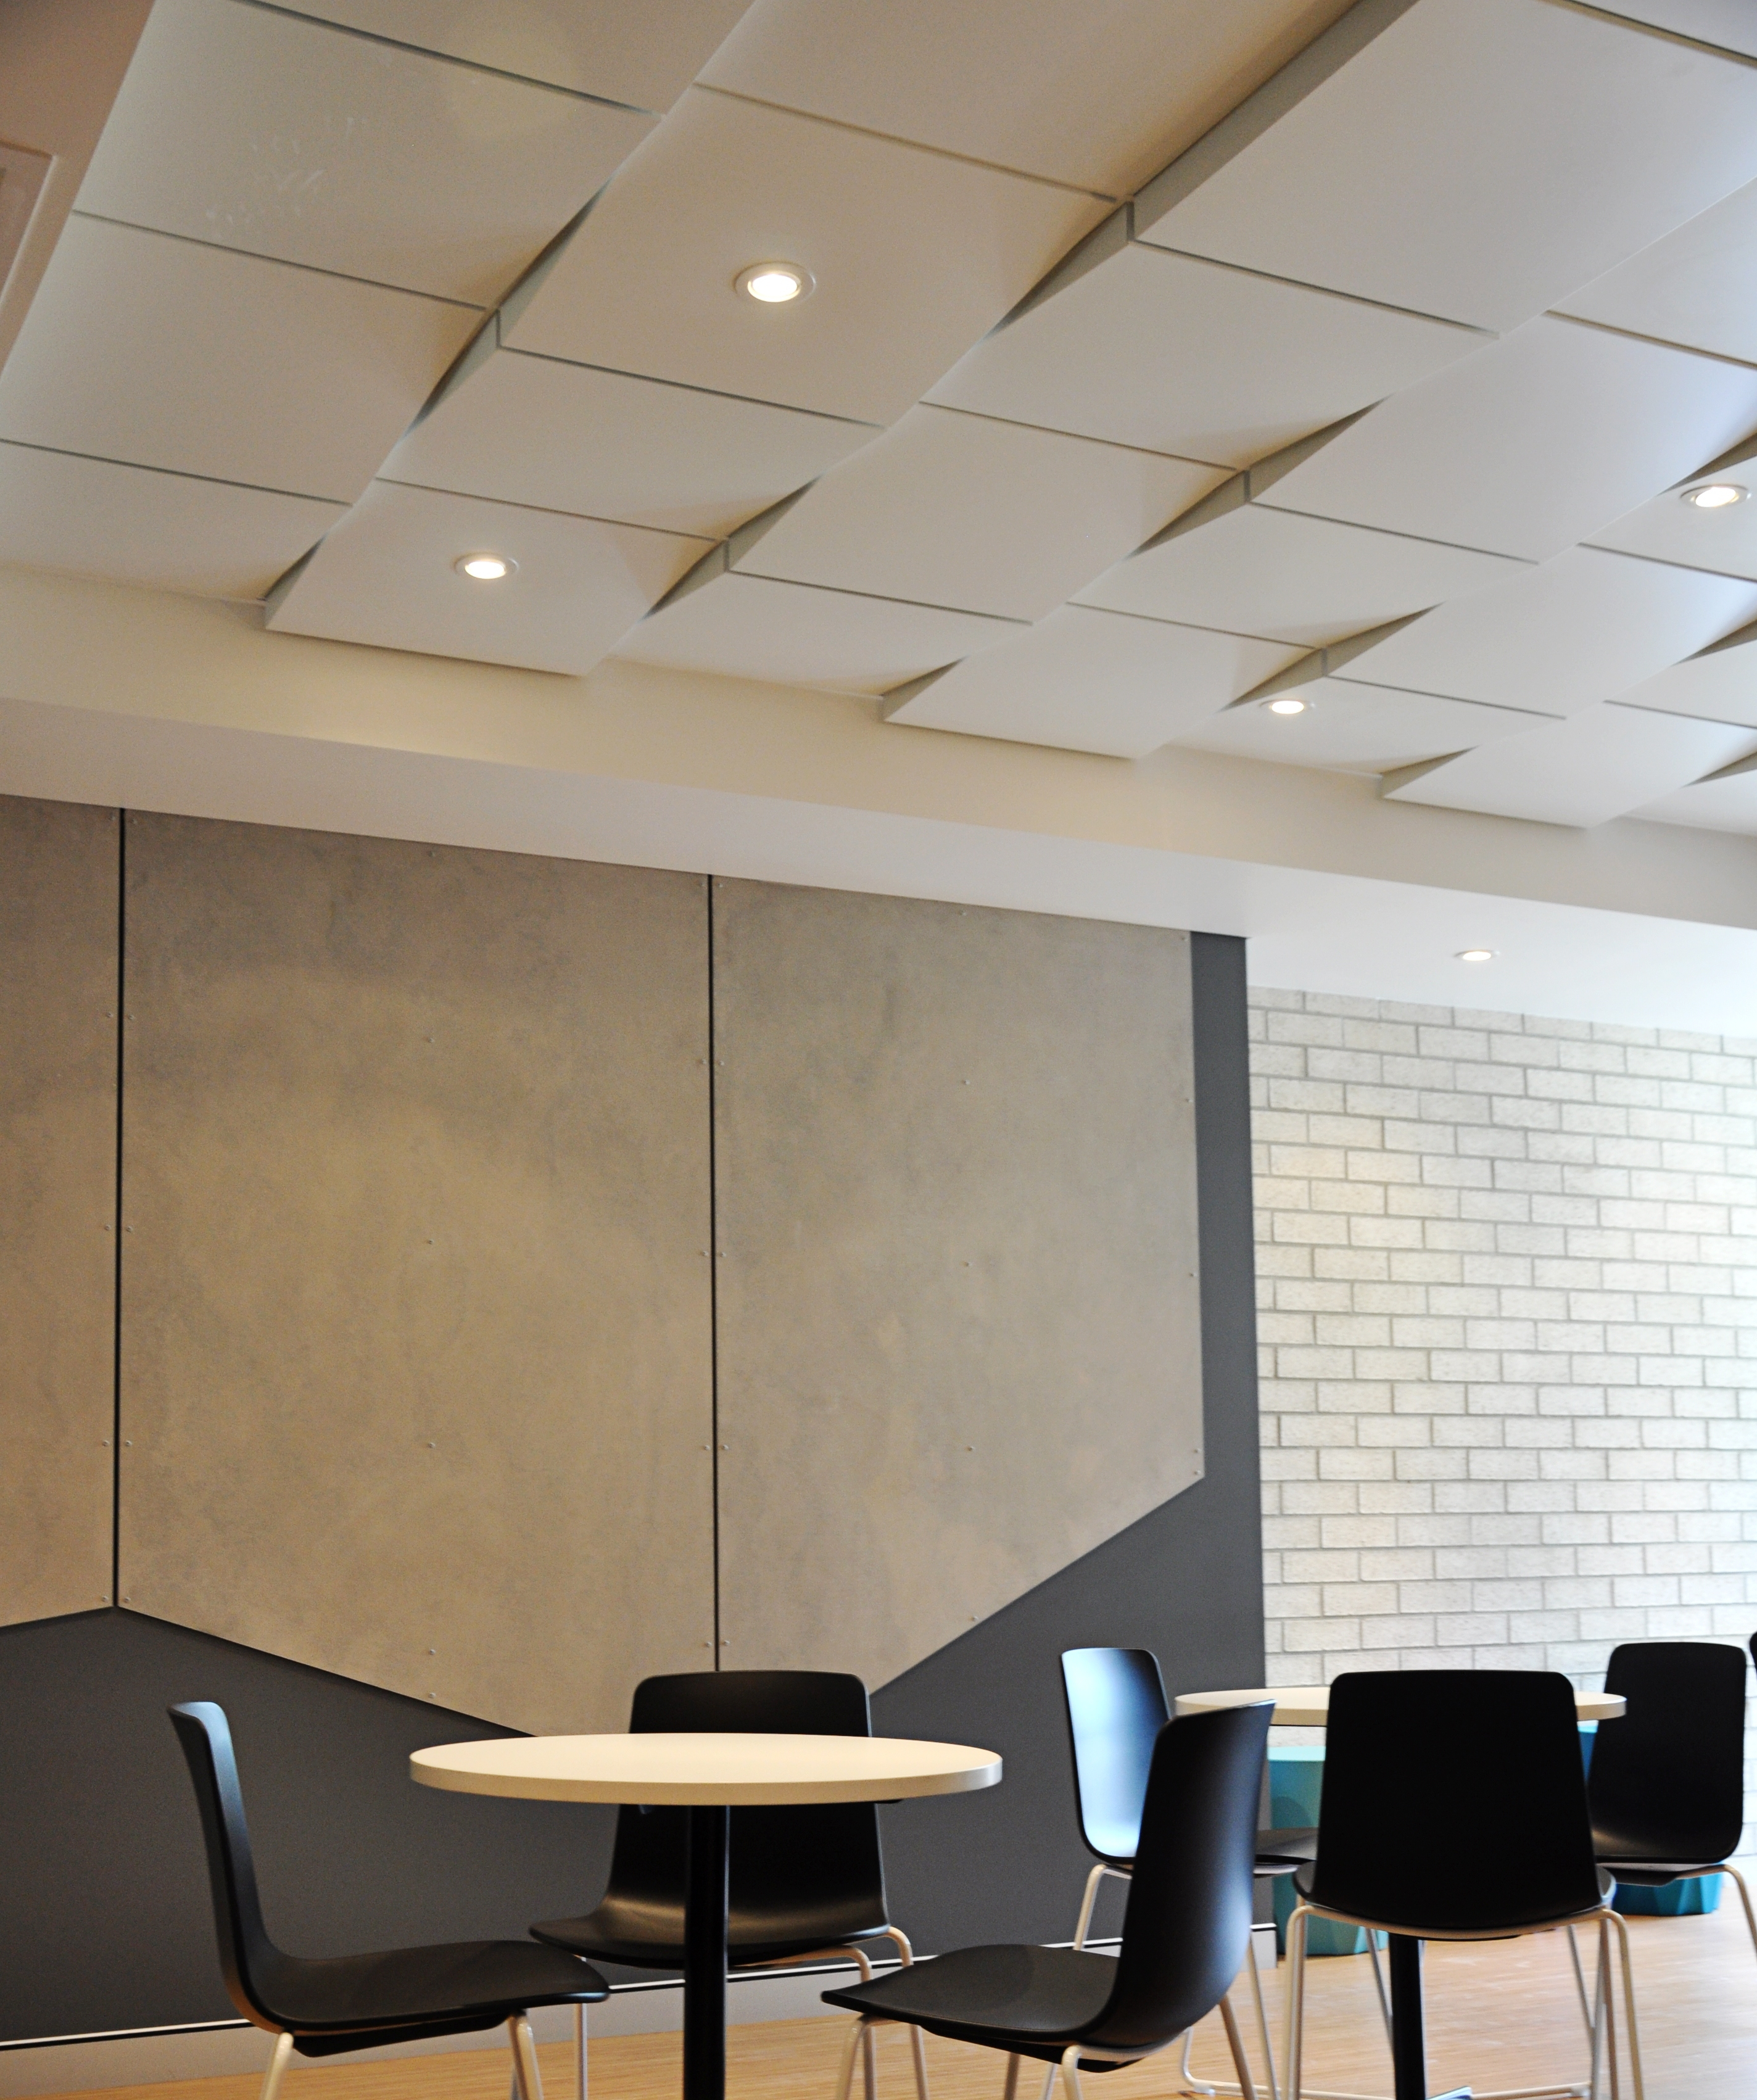 Small Acoustic Ceiling Tiles Small Acoustic Ceiling Tiles modern usg ceilings tiles with white geometric coopers plains fit 2848 X 3404